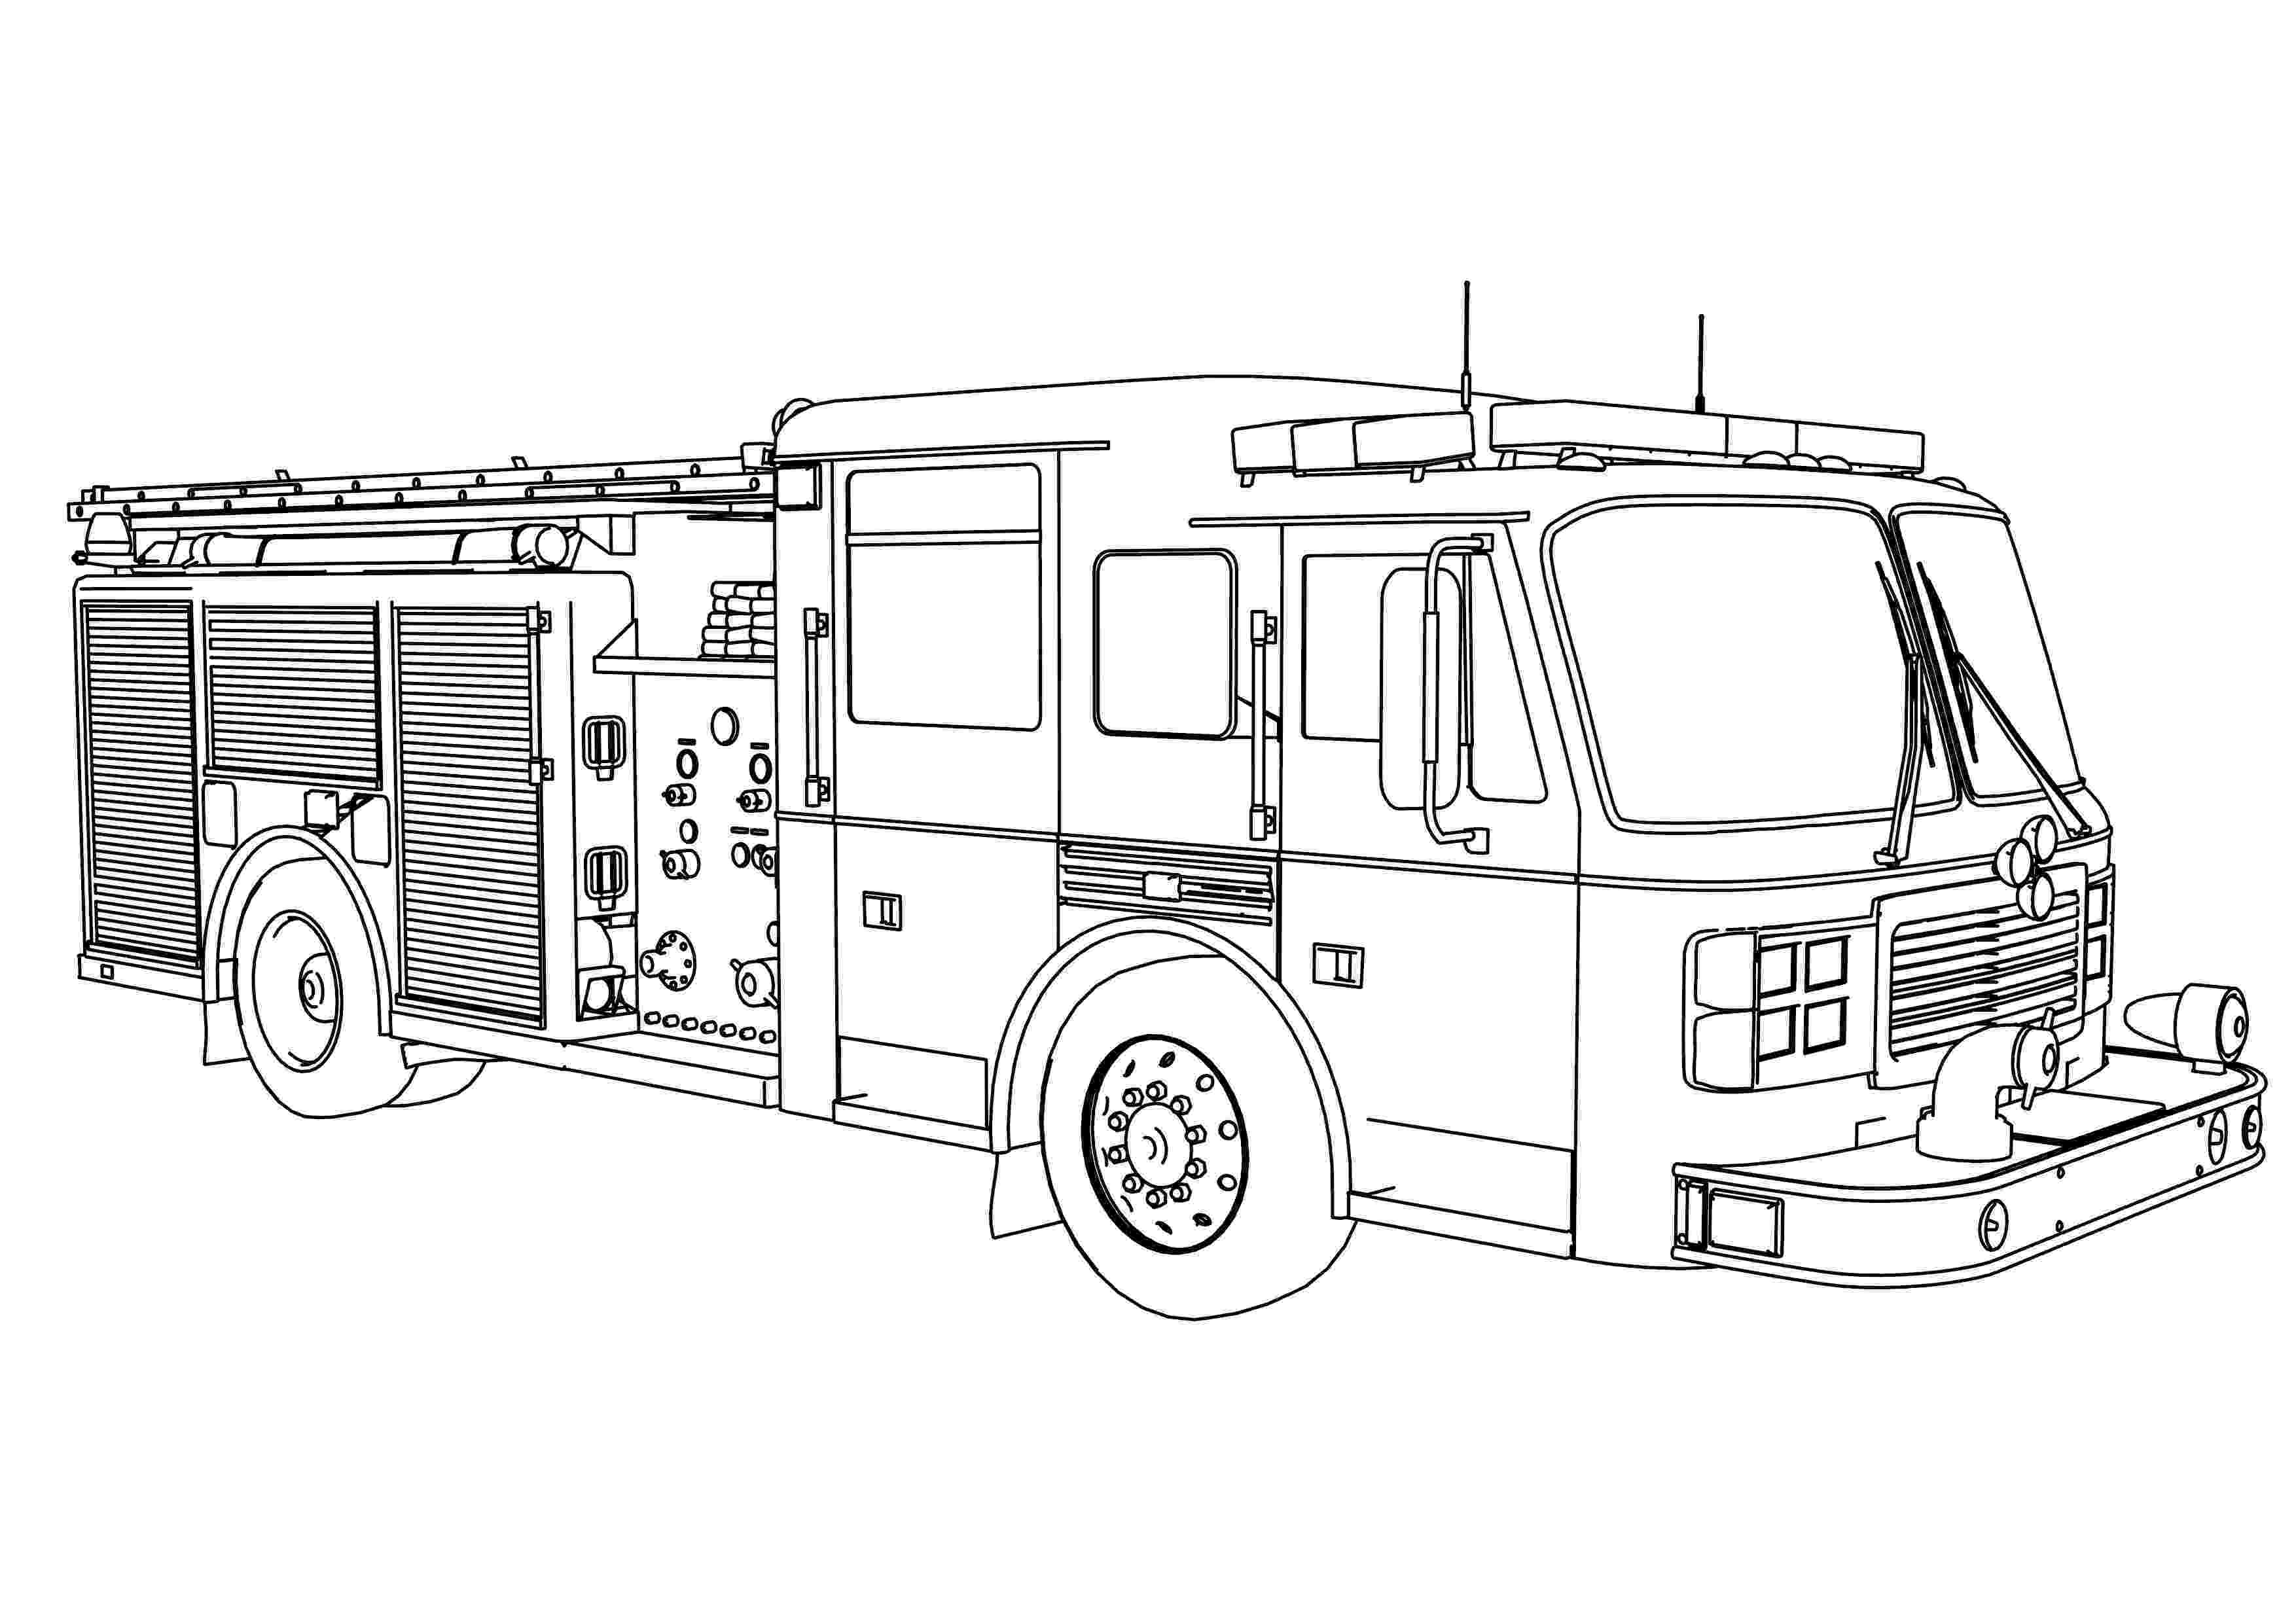 fire truck coloring pages to print free printable fire truck coloring pages for kids truck print coloring pages to fire